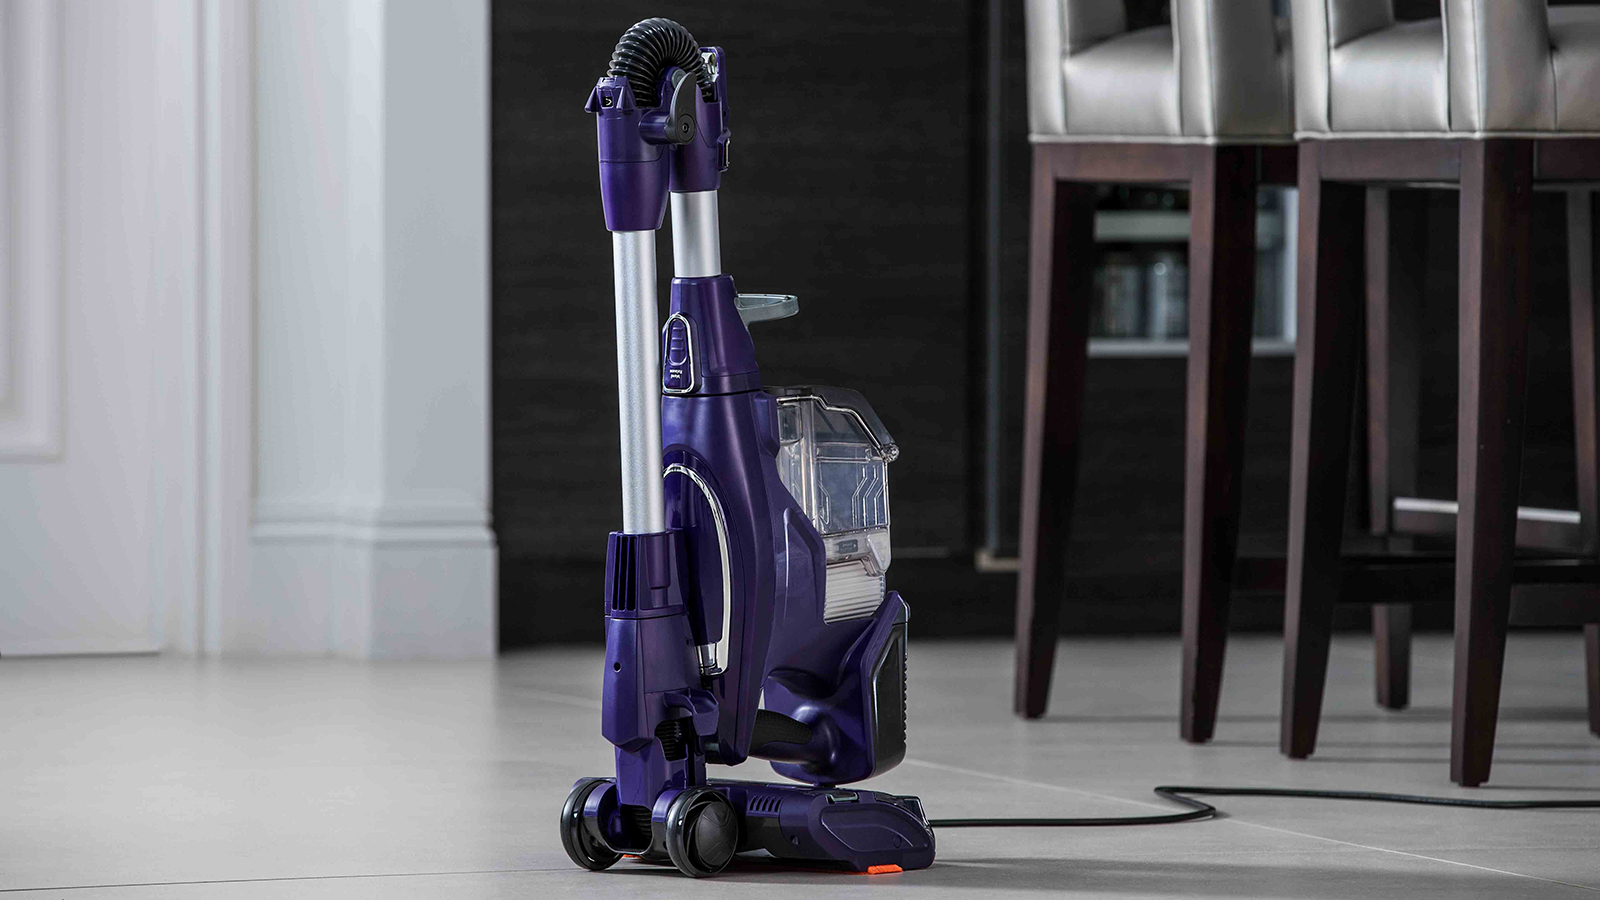 Shark DuoClean Corded Stick Vacuum Cleaner Easy Compact Storage